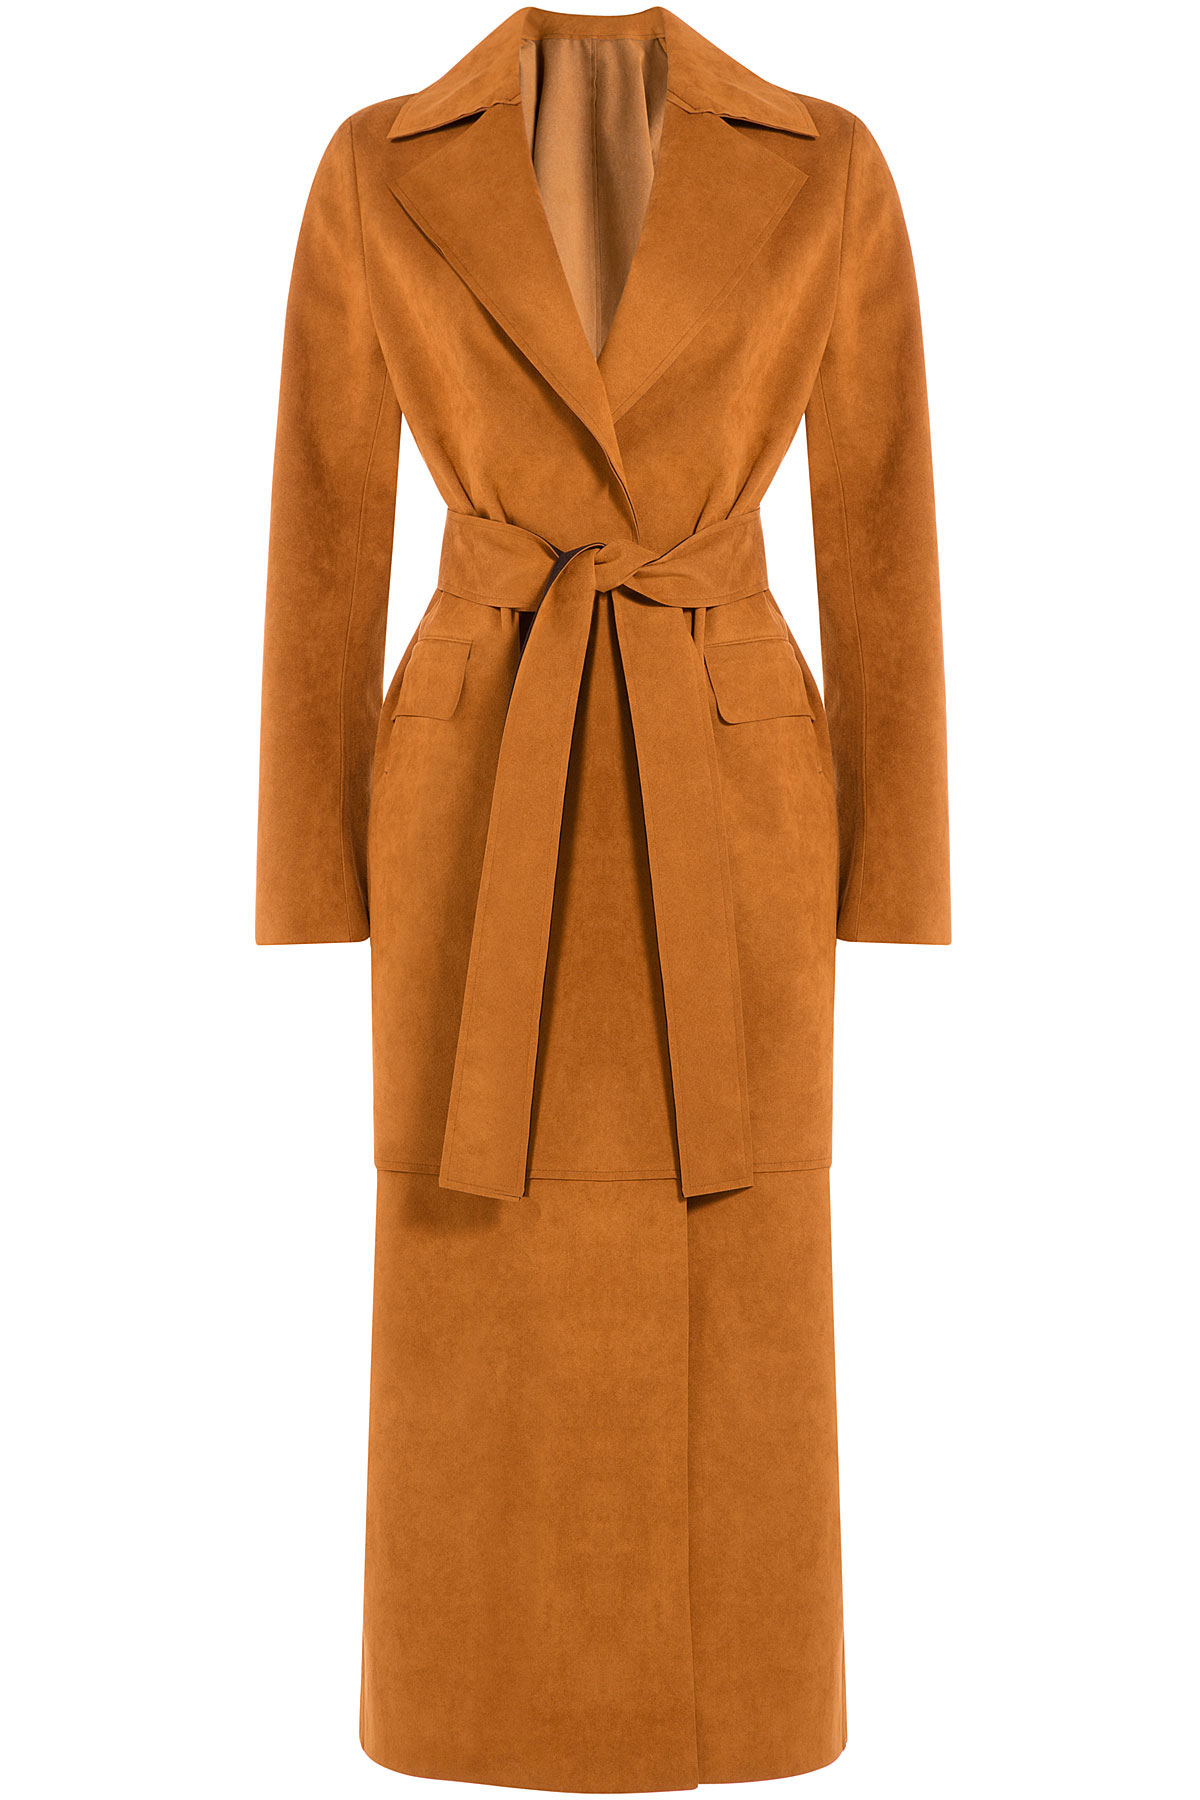 Msgm Long Tailored Coat Camel In Brown Lyst